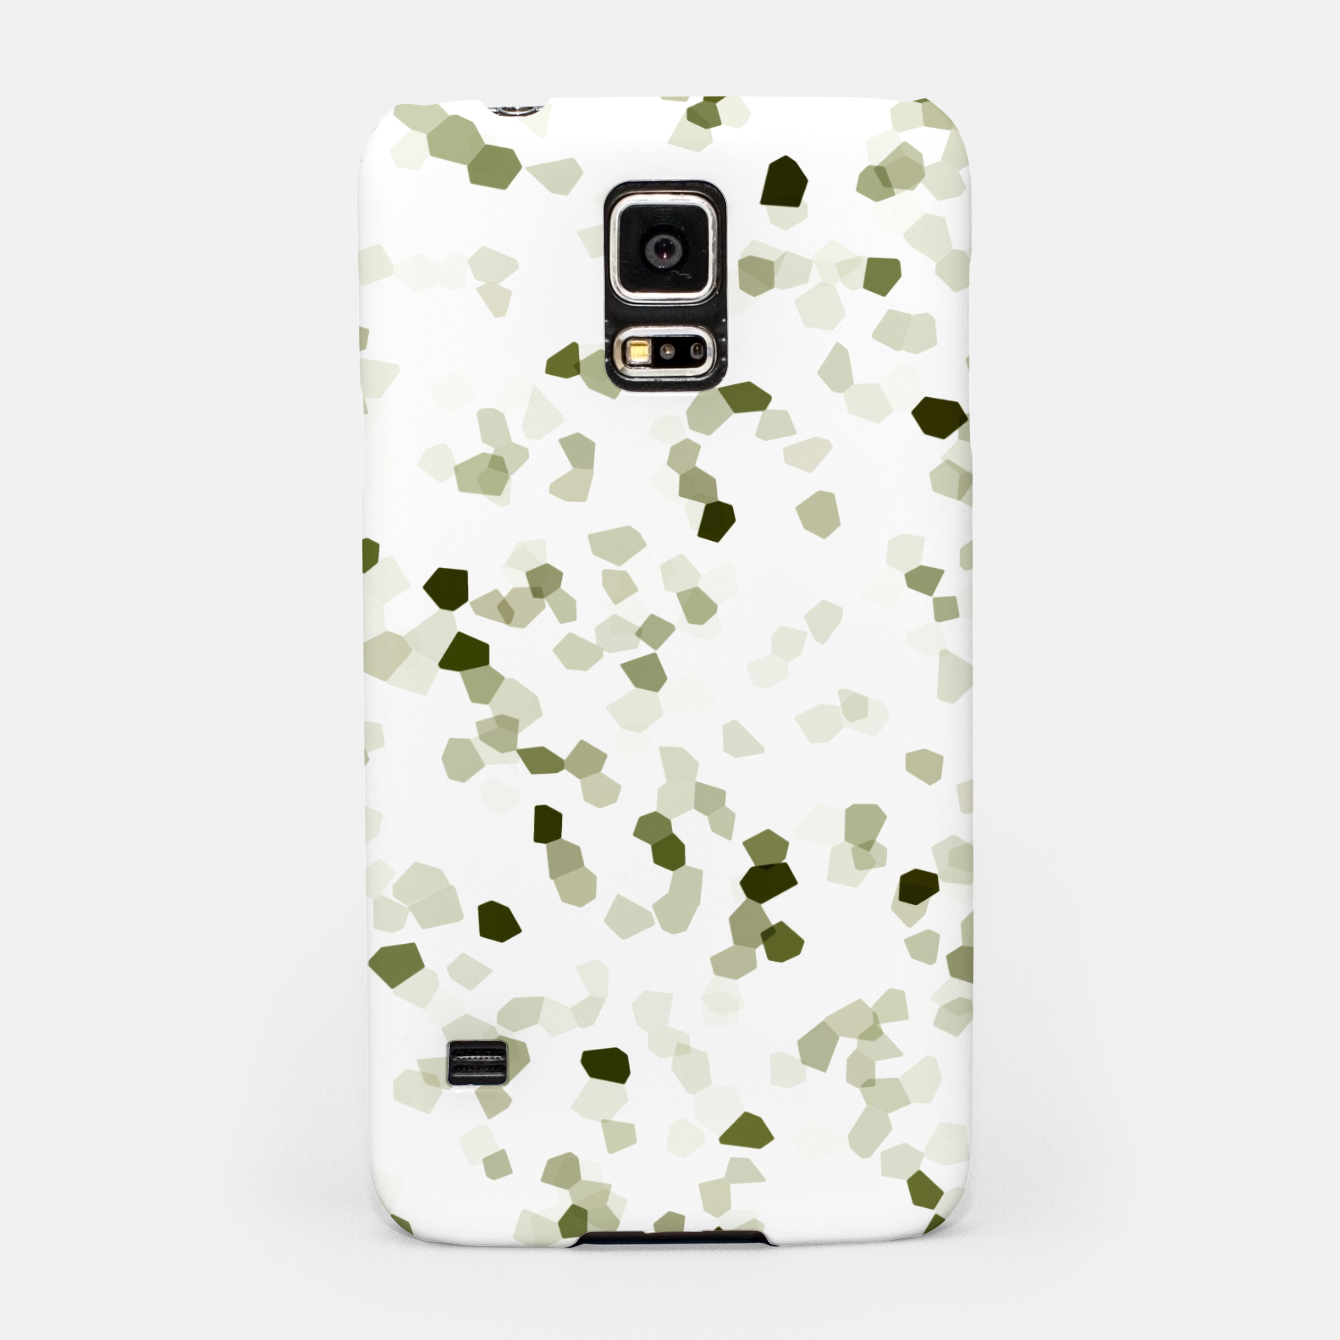 Zdjęcie Square Motif Abstract Geometric Pattern Samsung Case - Live Heroes